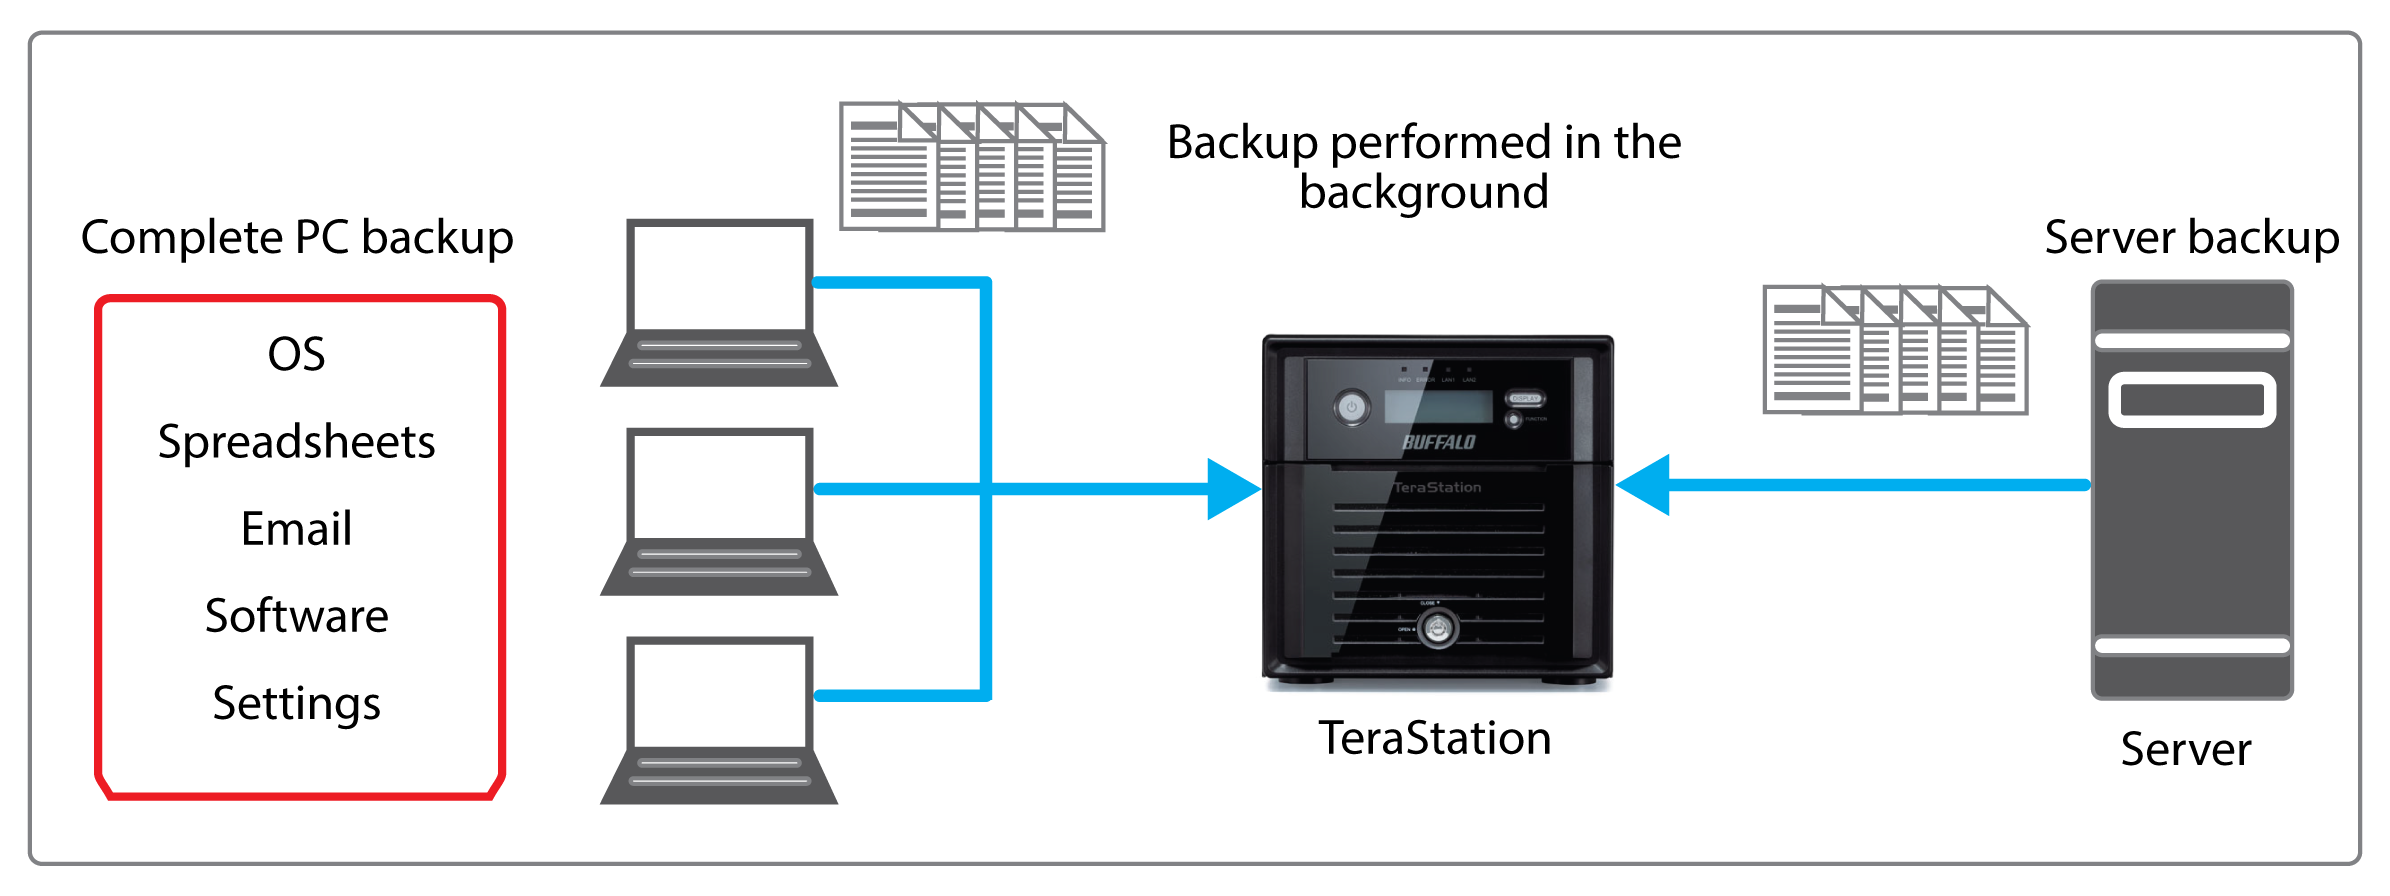 terastation 5000 data protection and backup